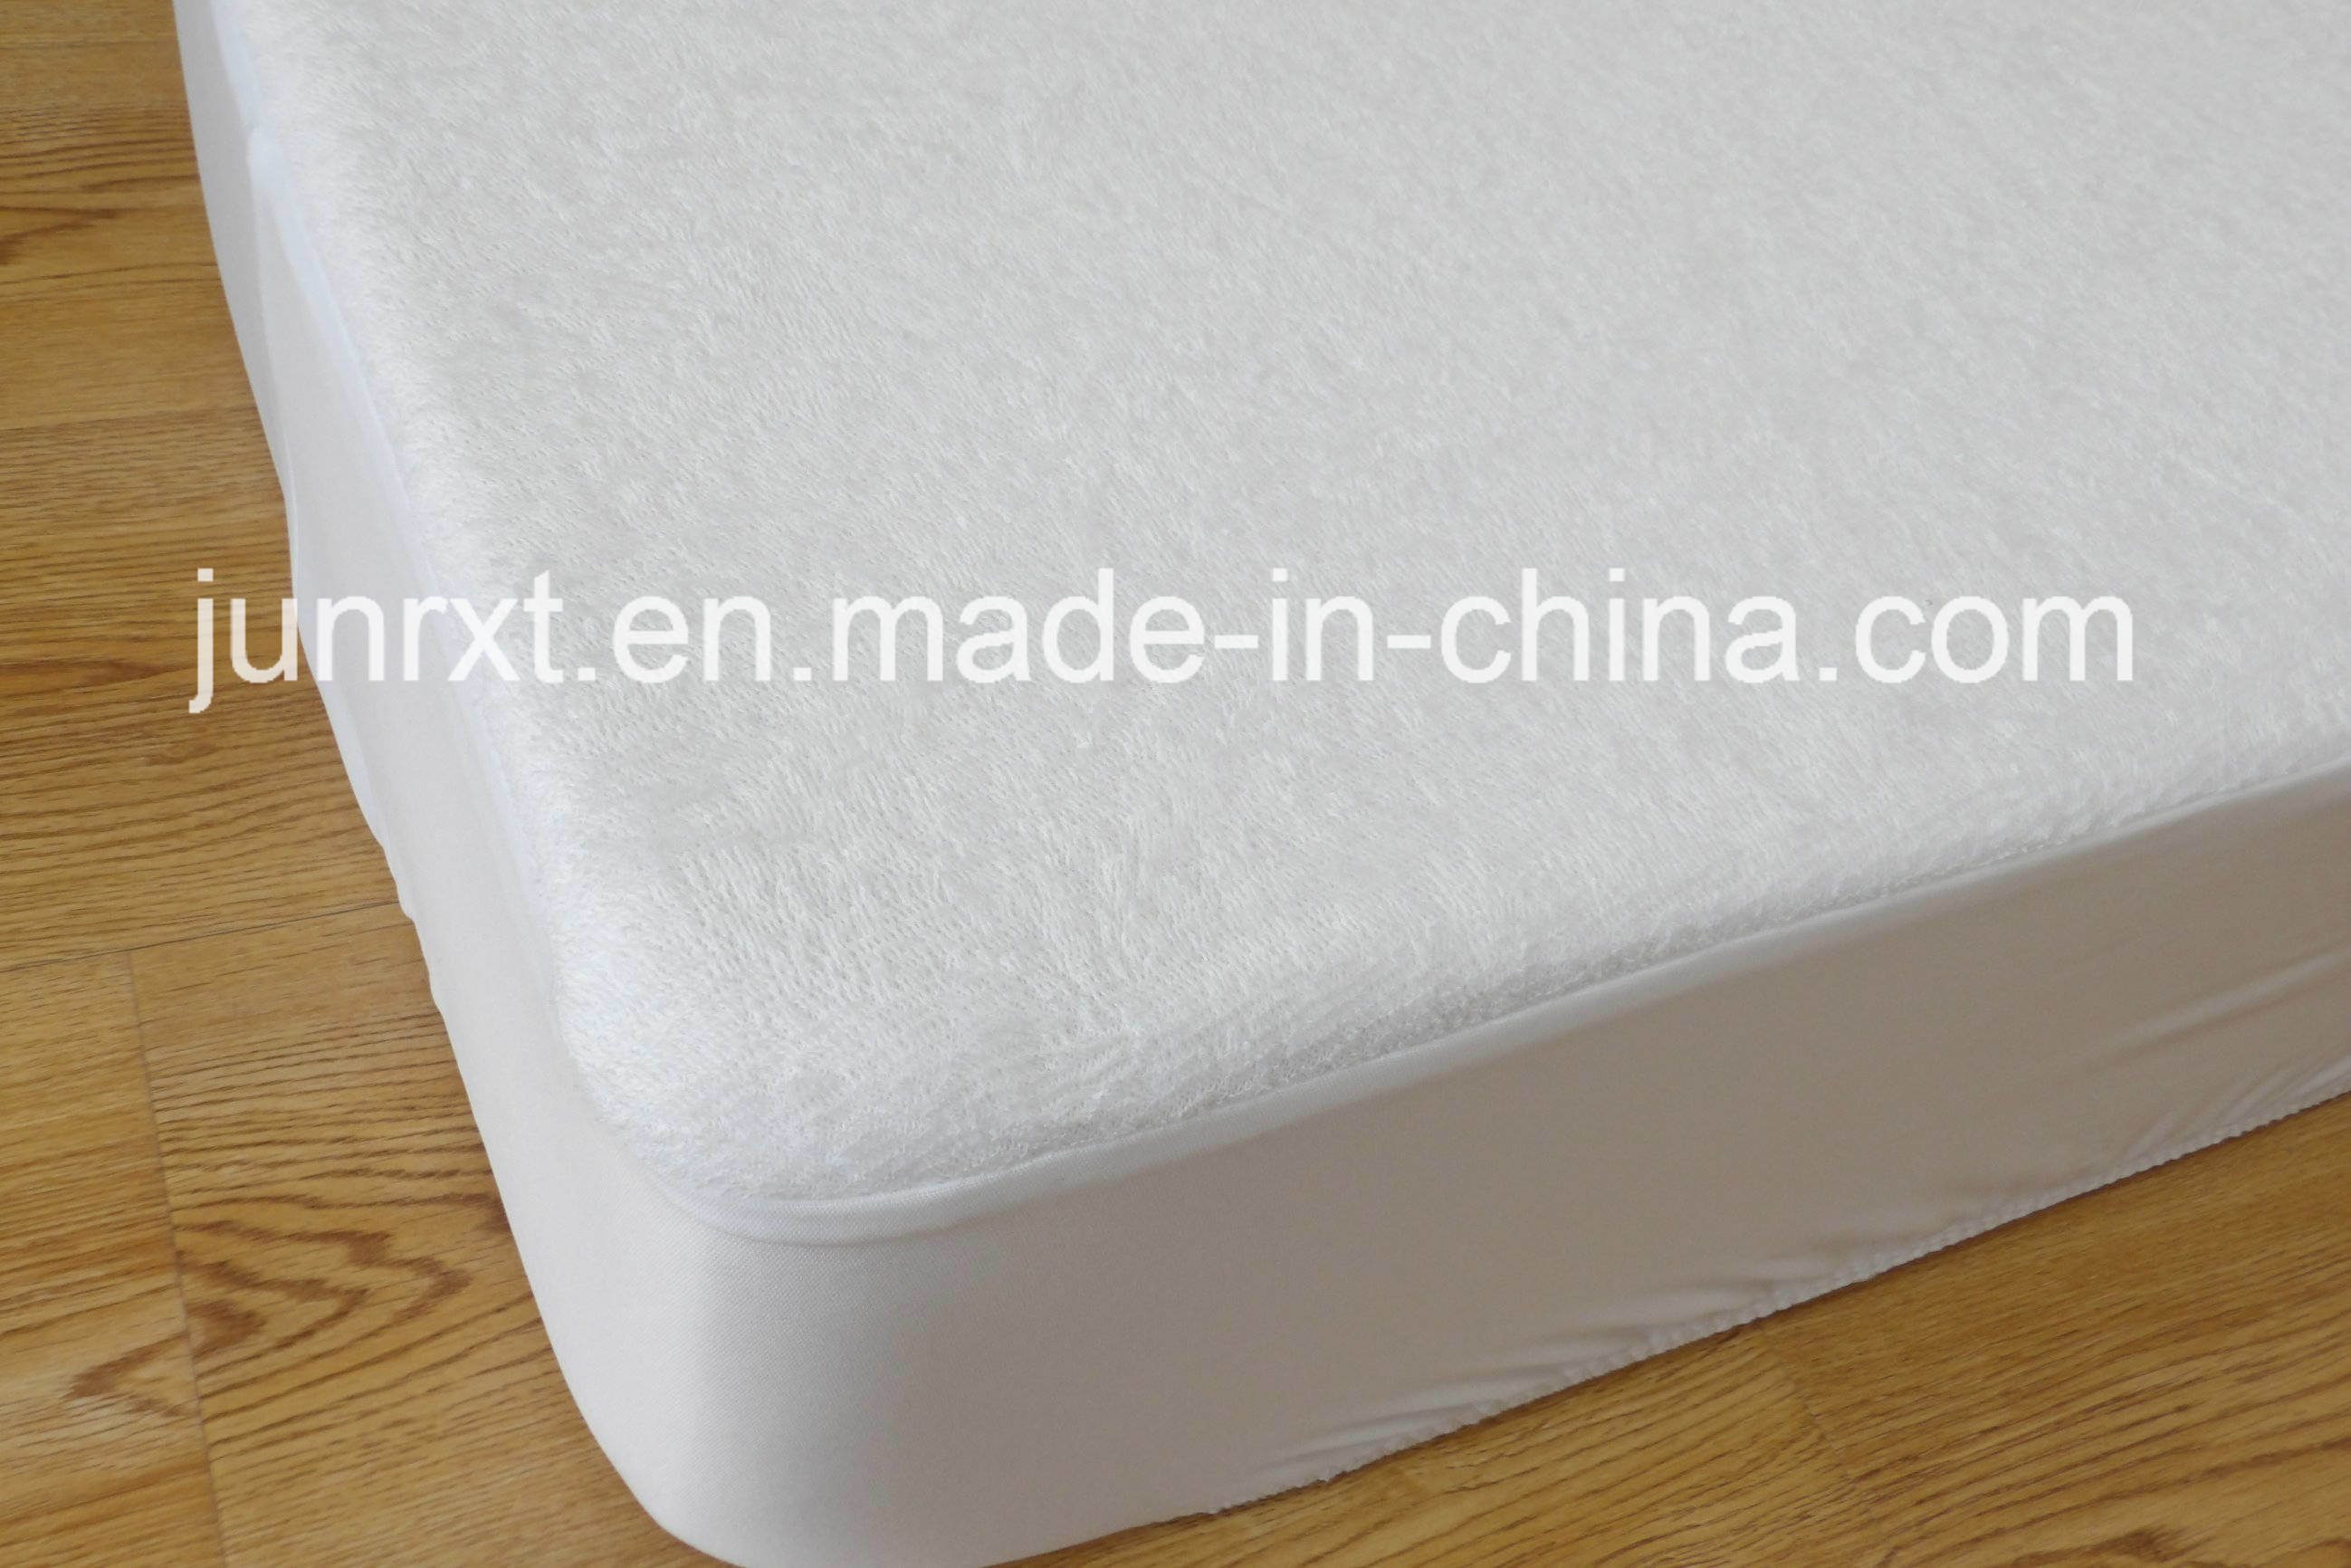 Bed Bug Proof Cover China Waterproof Bed Bug Proof Terry Towelling Mattress Cover